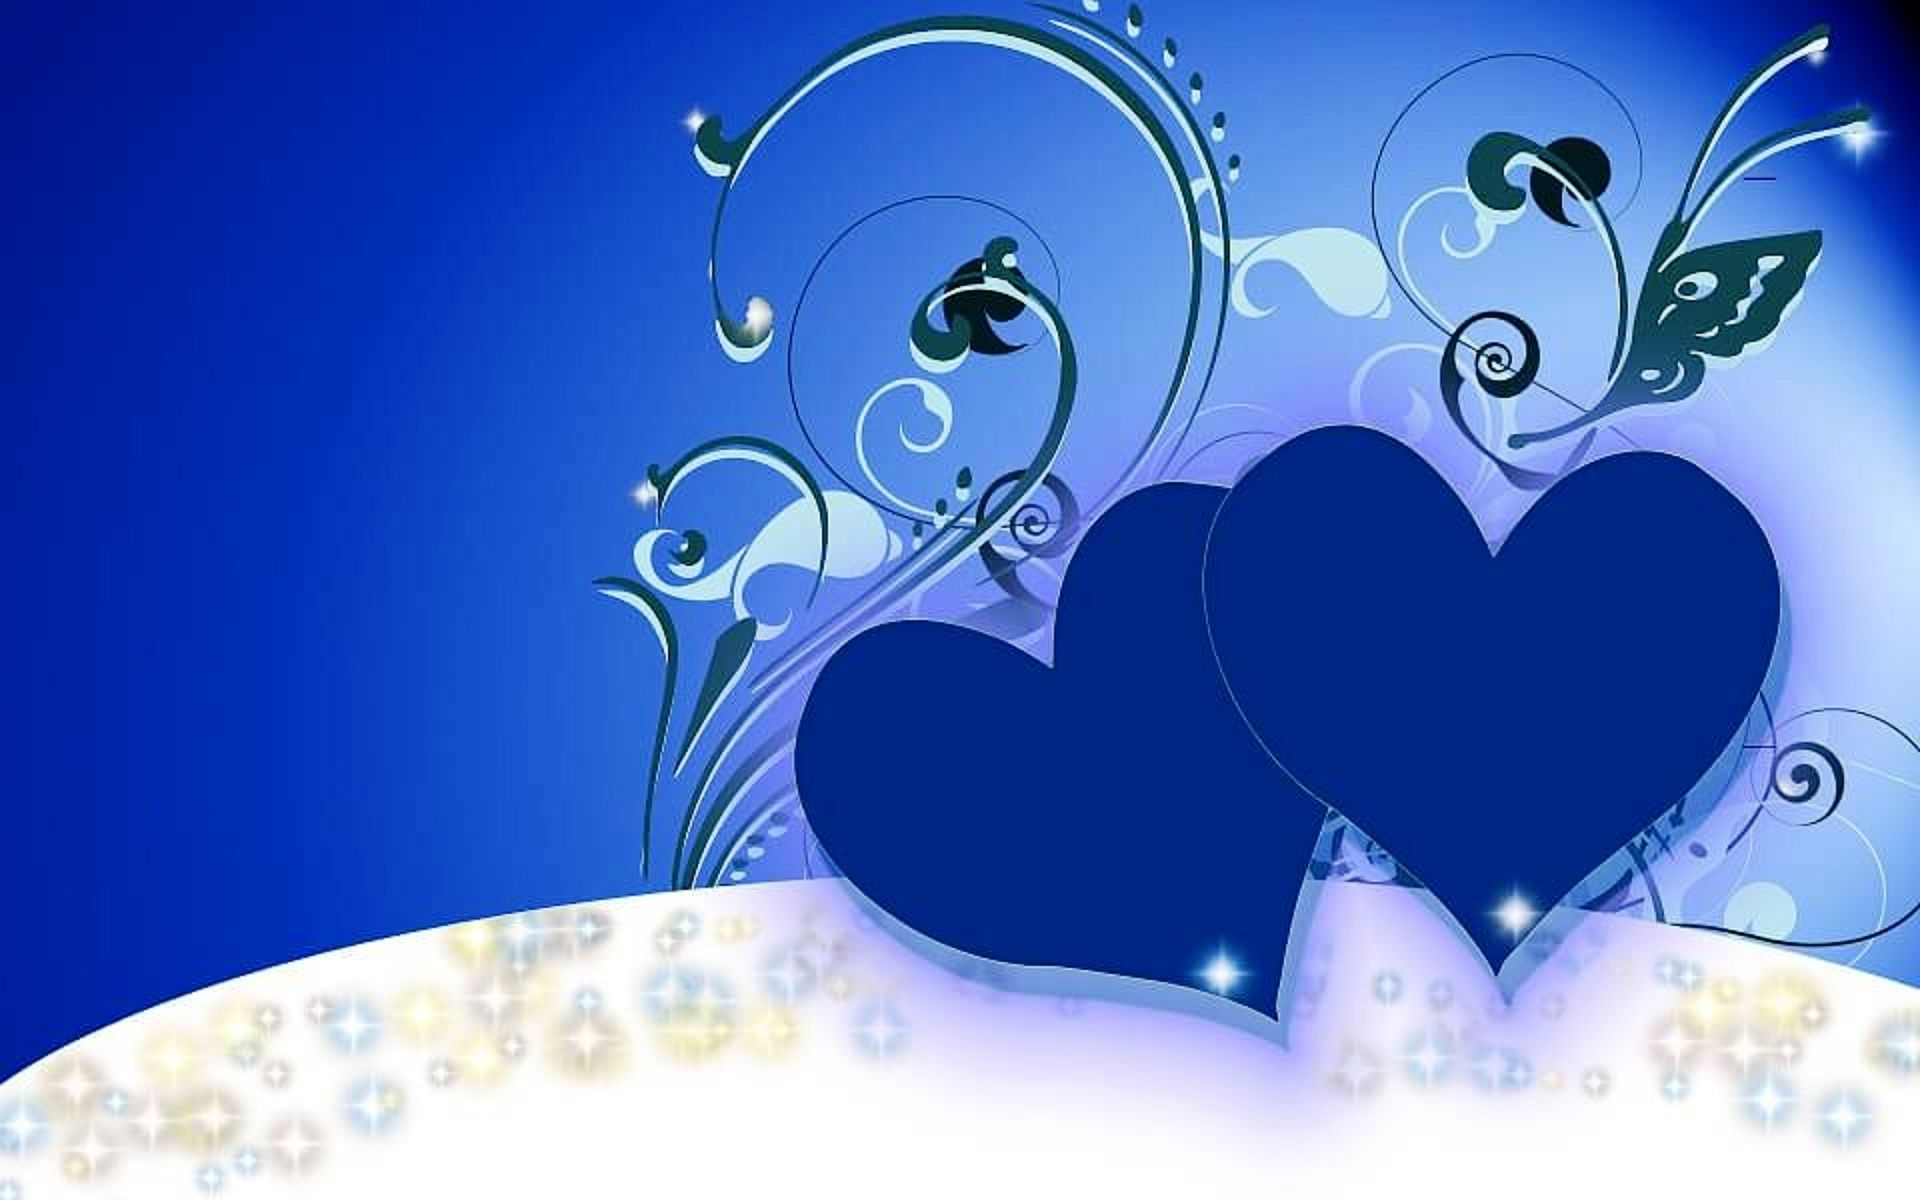 3d Love Images Hd 15 Free Wallpaper: Superb-abstract-design-heart-love-images-3d Wallpapers Hd